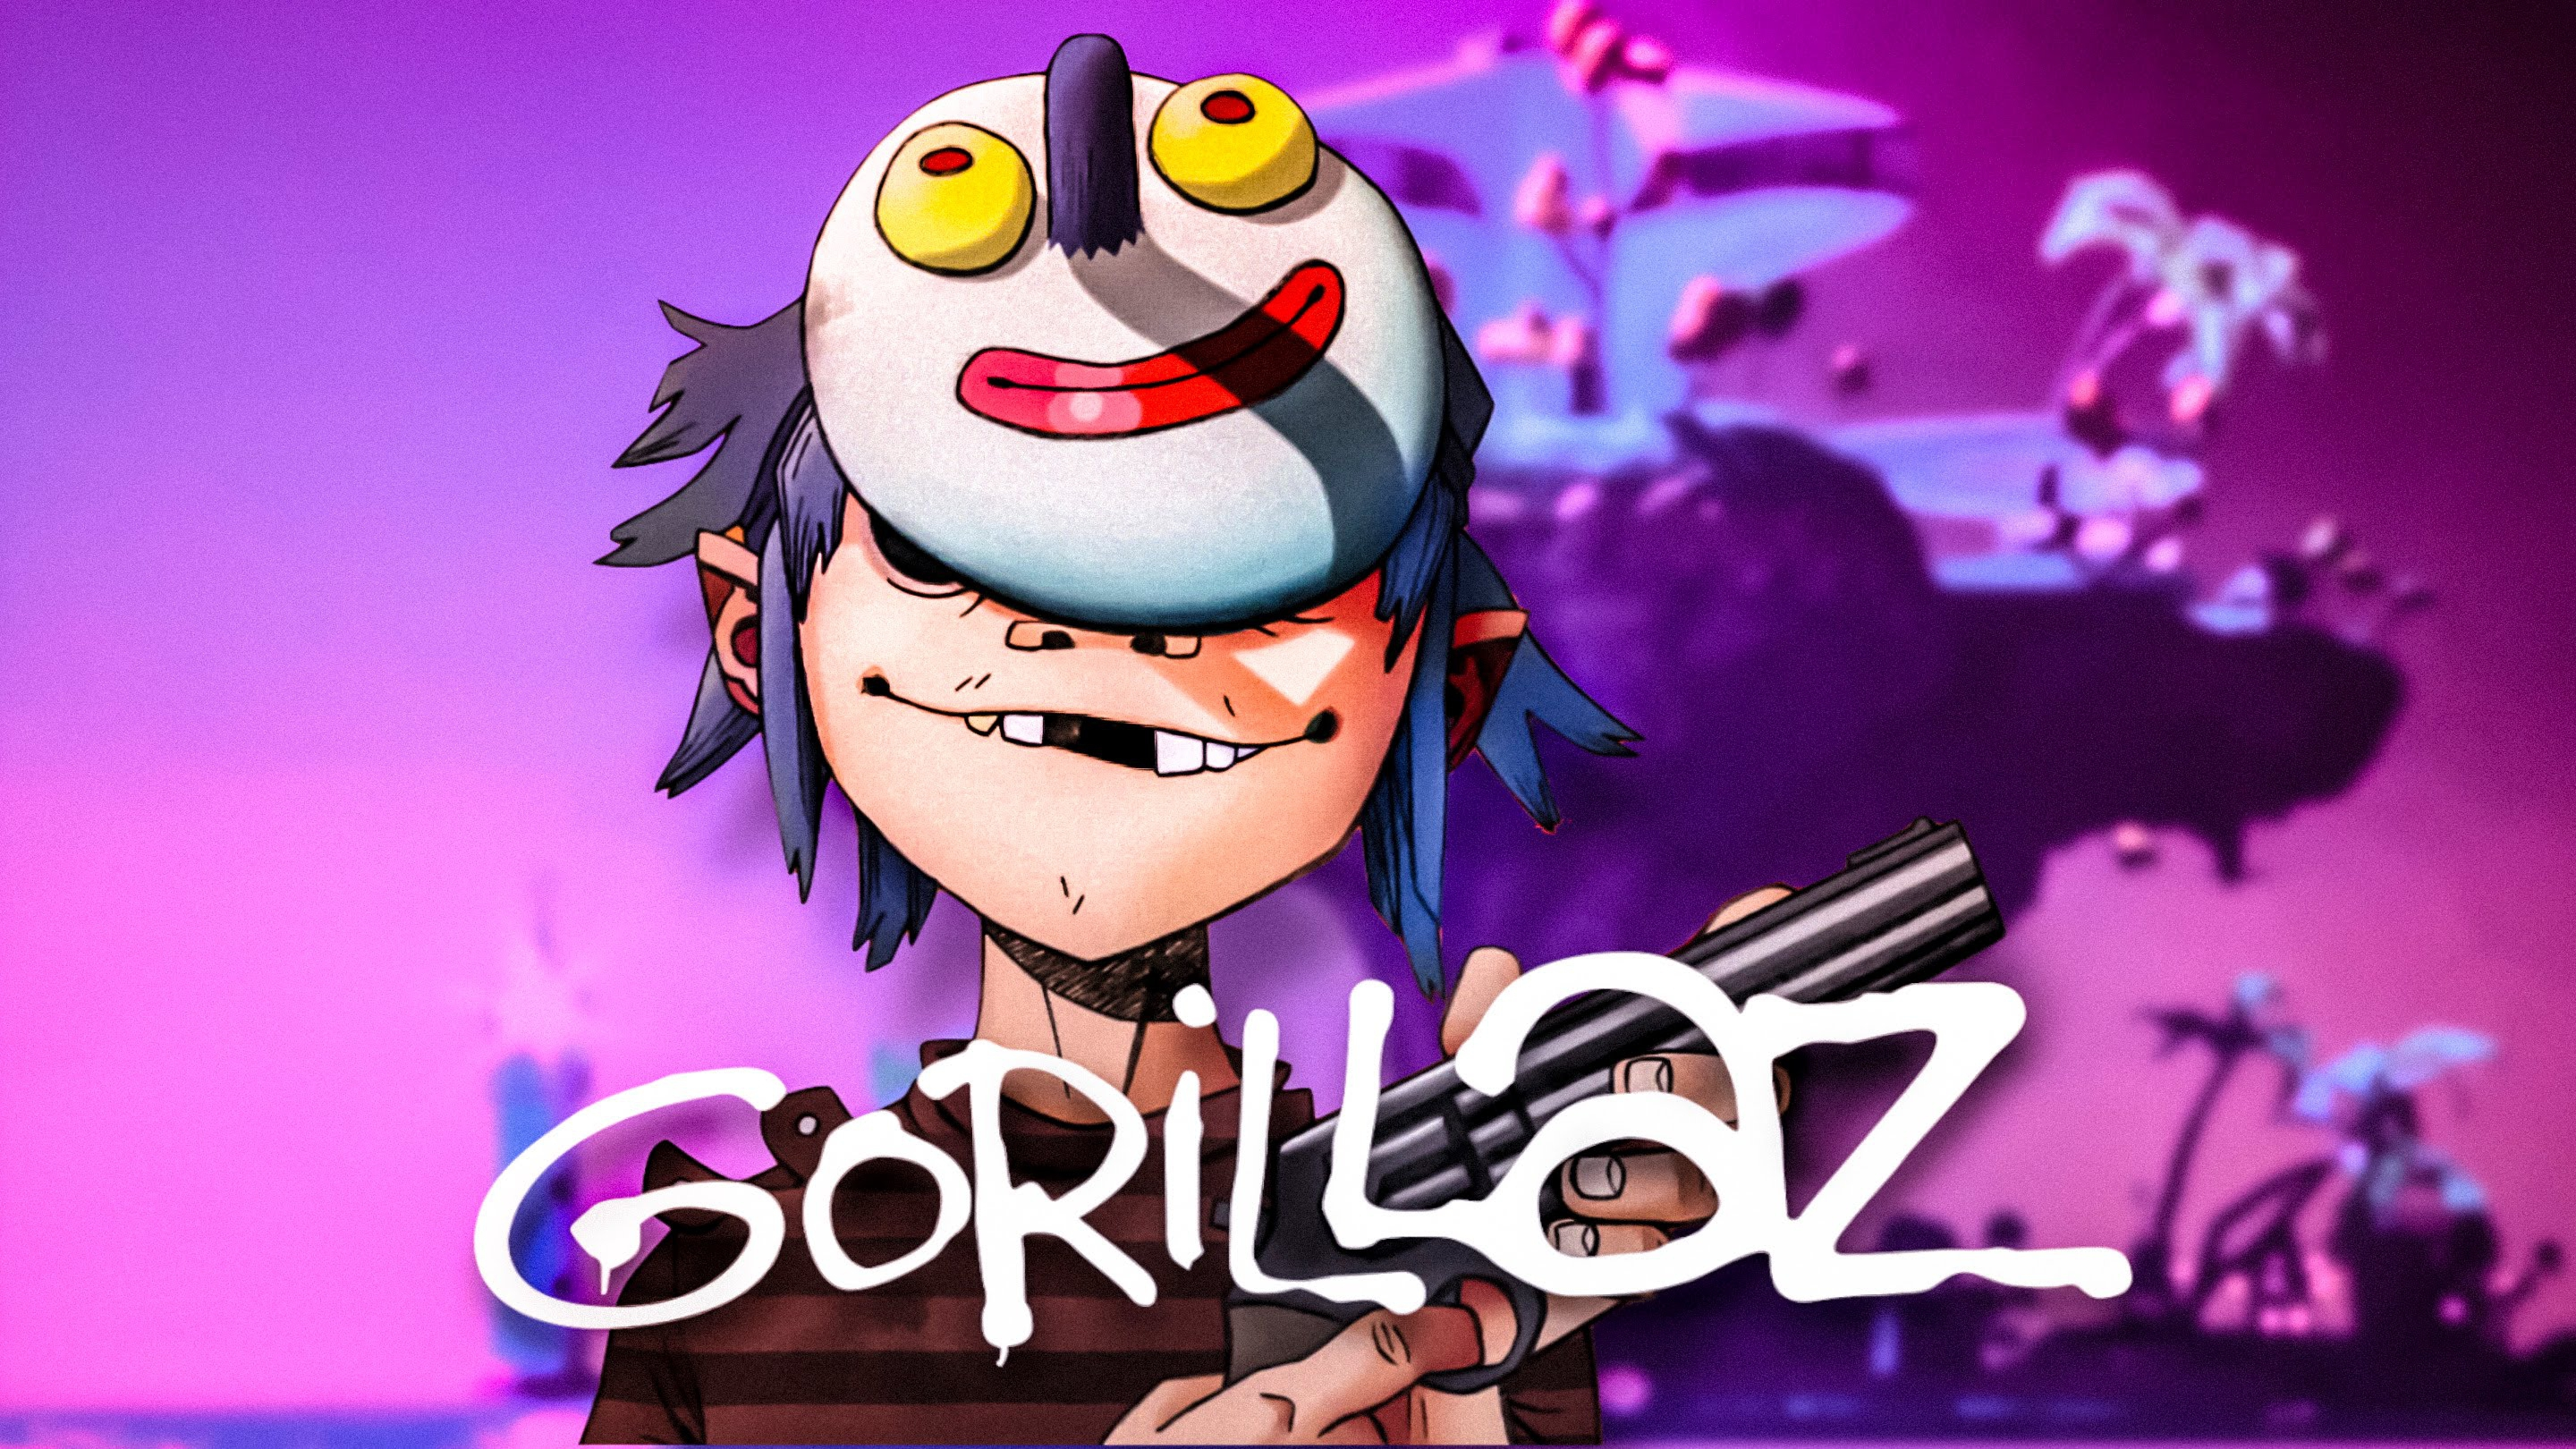 download wallpaper gorillaz desktop - photo #15